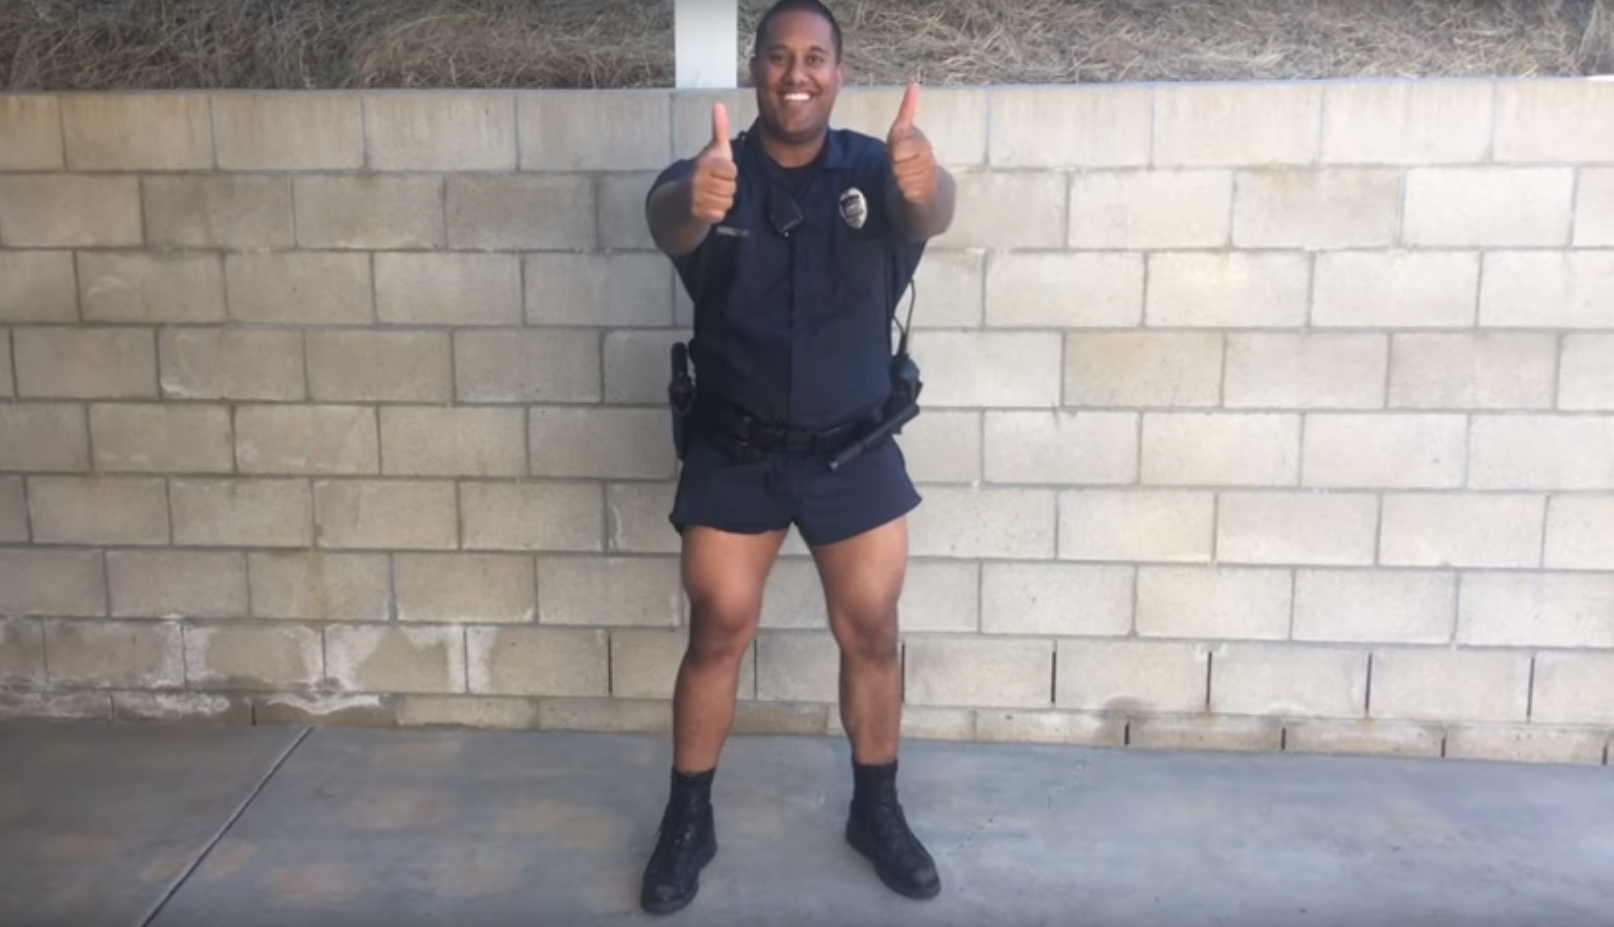 0f360dfe905 A parody video shows a police officer showing off the